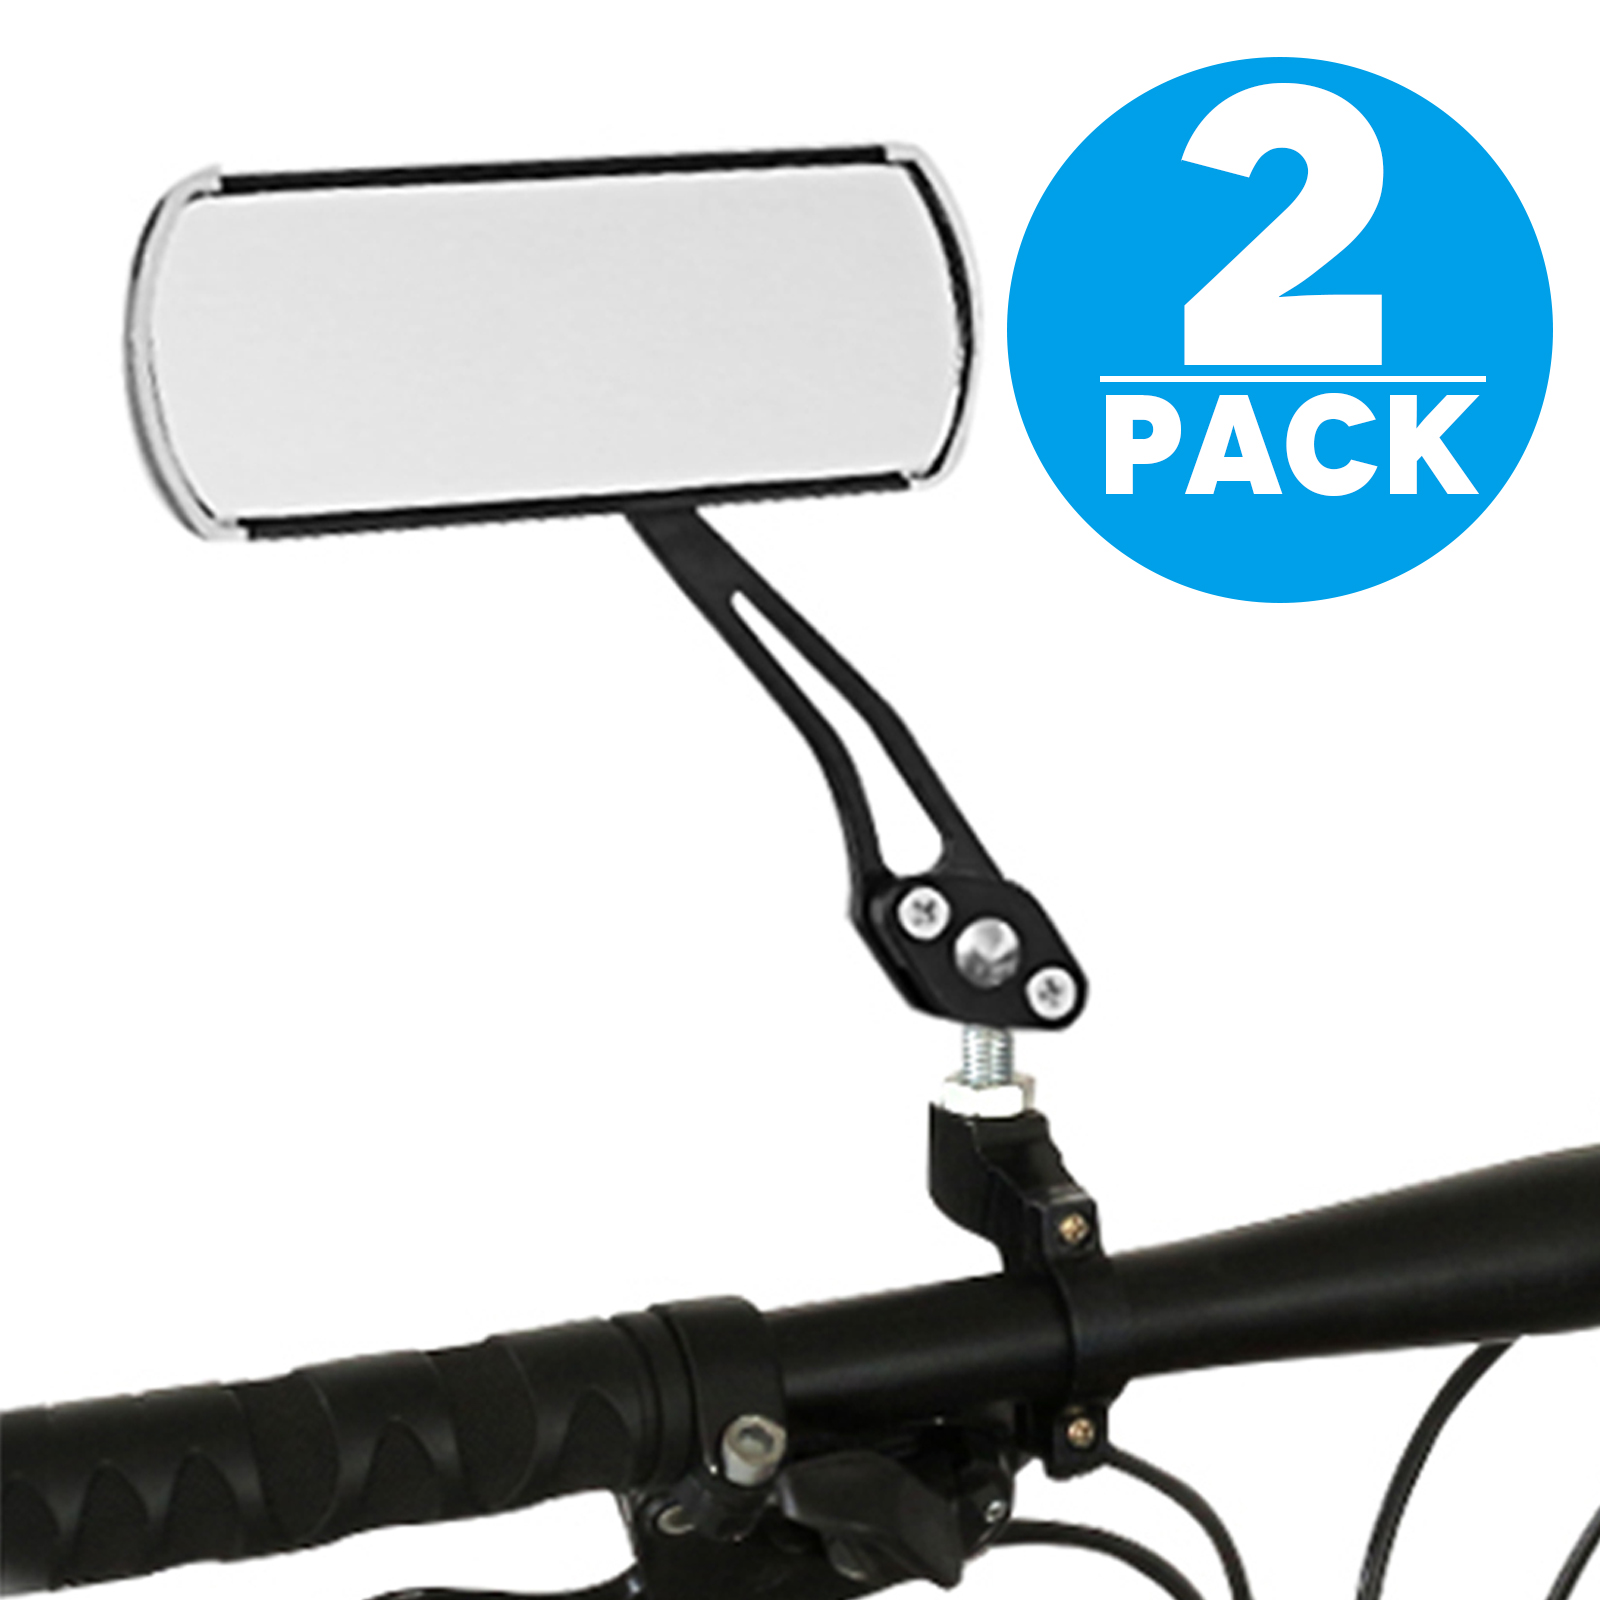 TSV Pair Bike Glass Mirror Universal Adjustable Rotatable Safe Rearview, HD, Blast-resistant, Car Used Safe Glass Lens for Mountain Bicycle Electric Bike Cycling